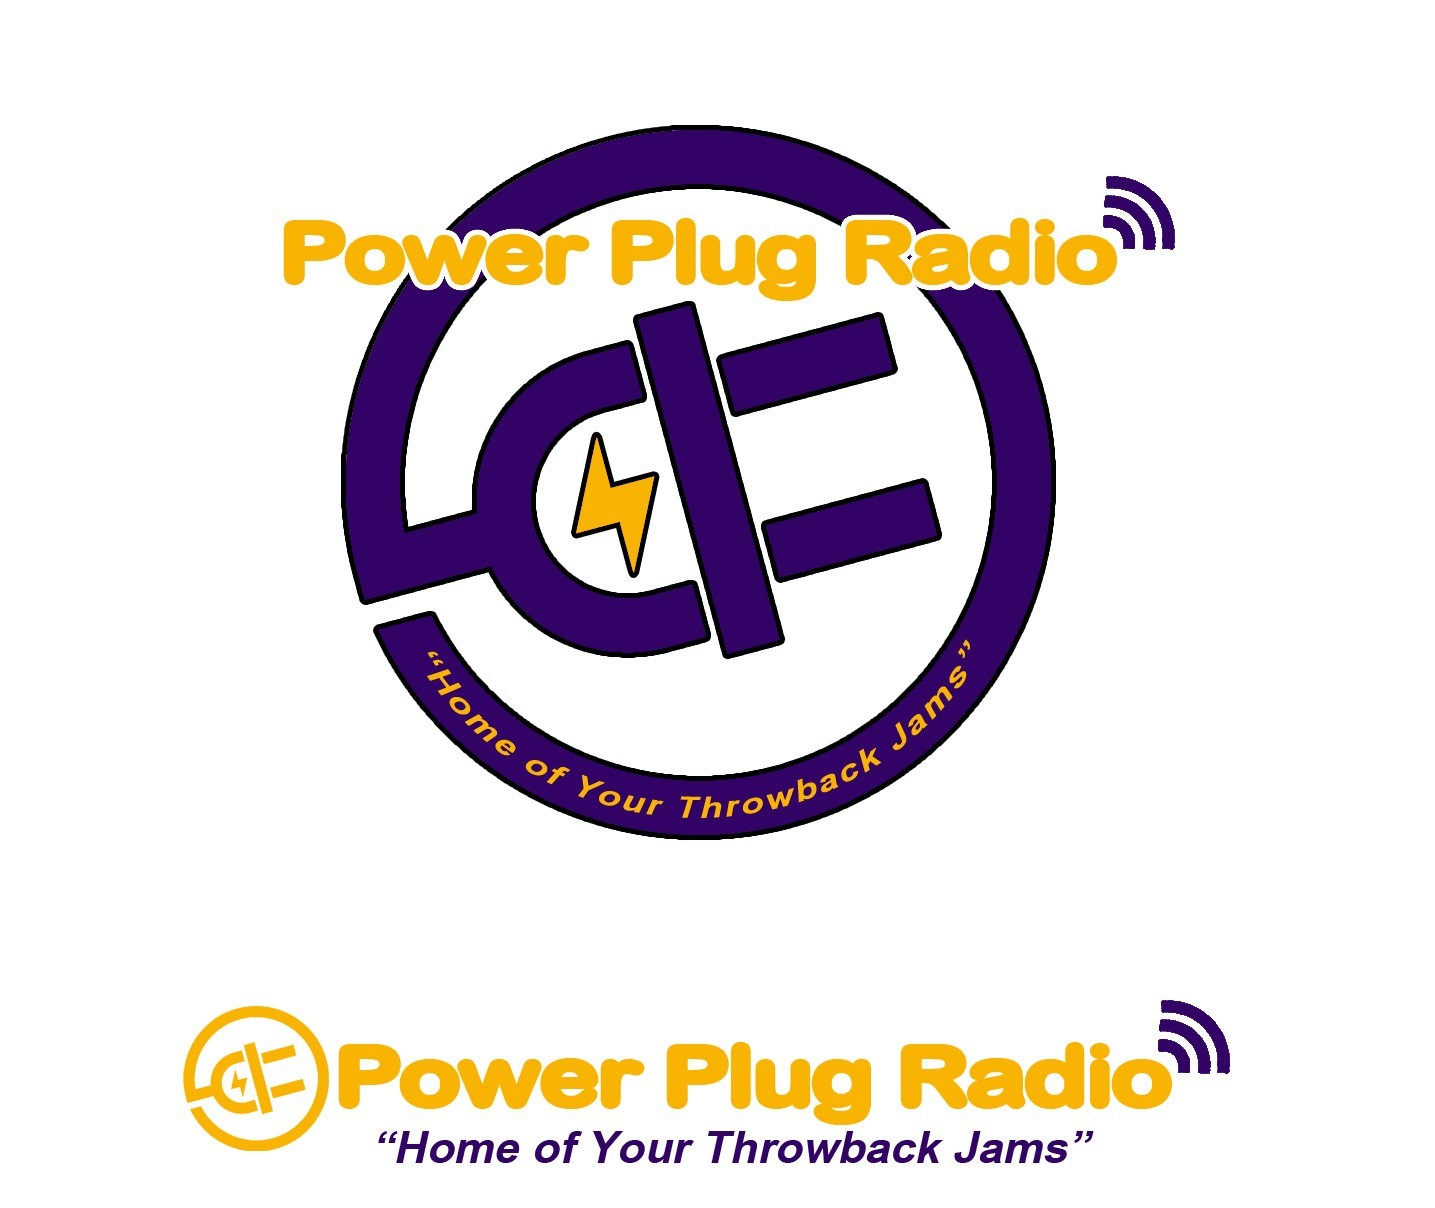 Power Plug Radio